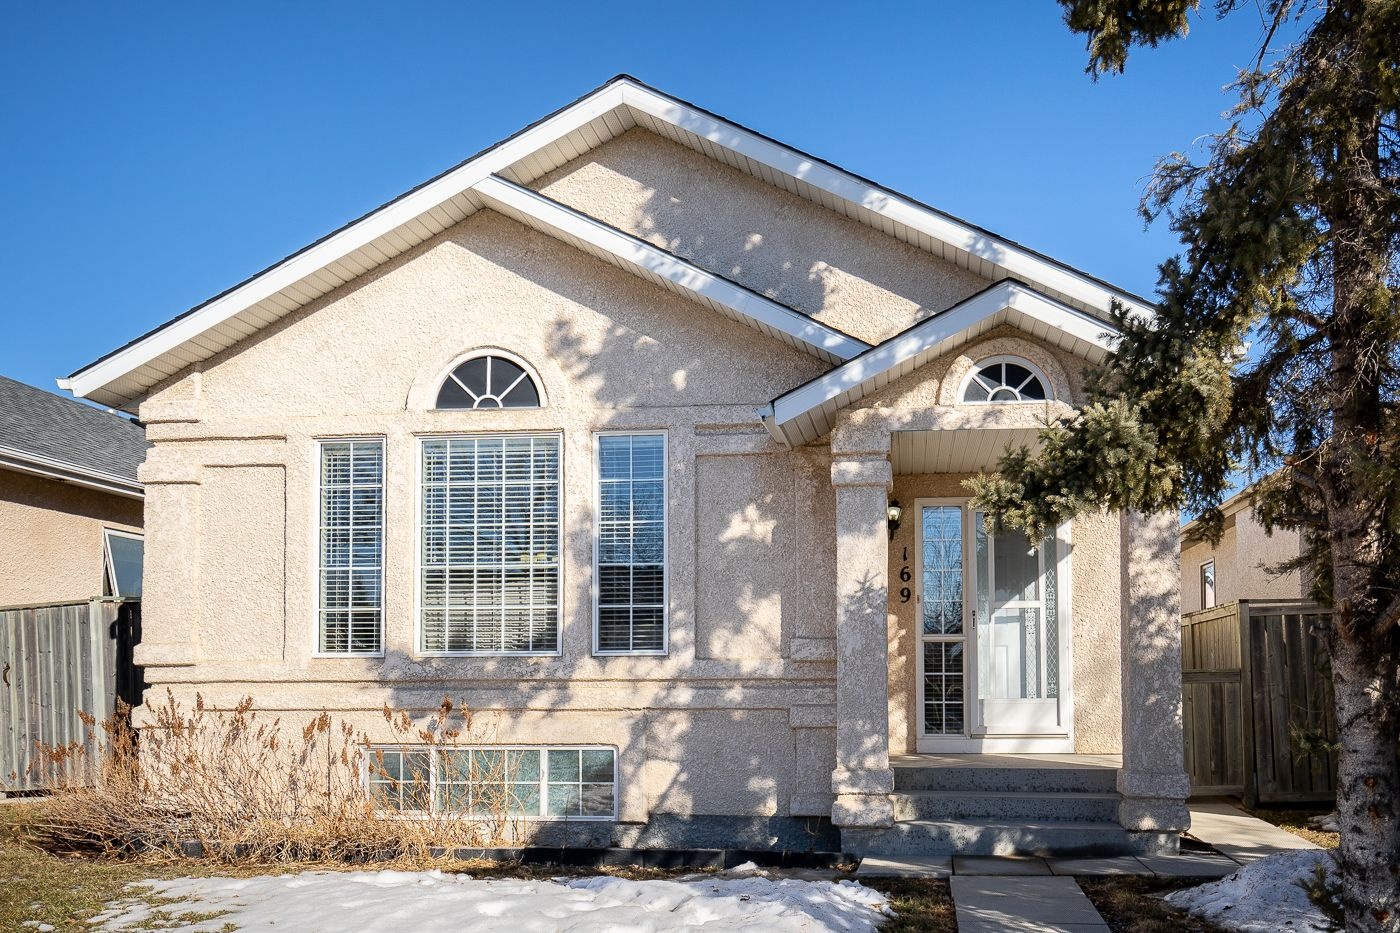 Main Photo: 169 Aldgate Road in Winnipeg: River Park South House for sale (2F)  : MLS®# 202104440